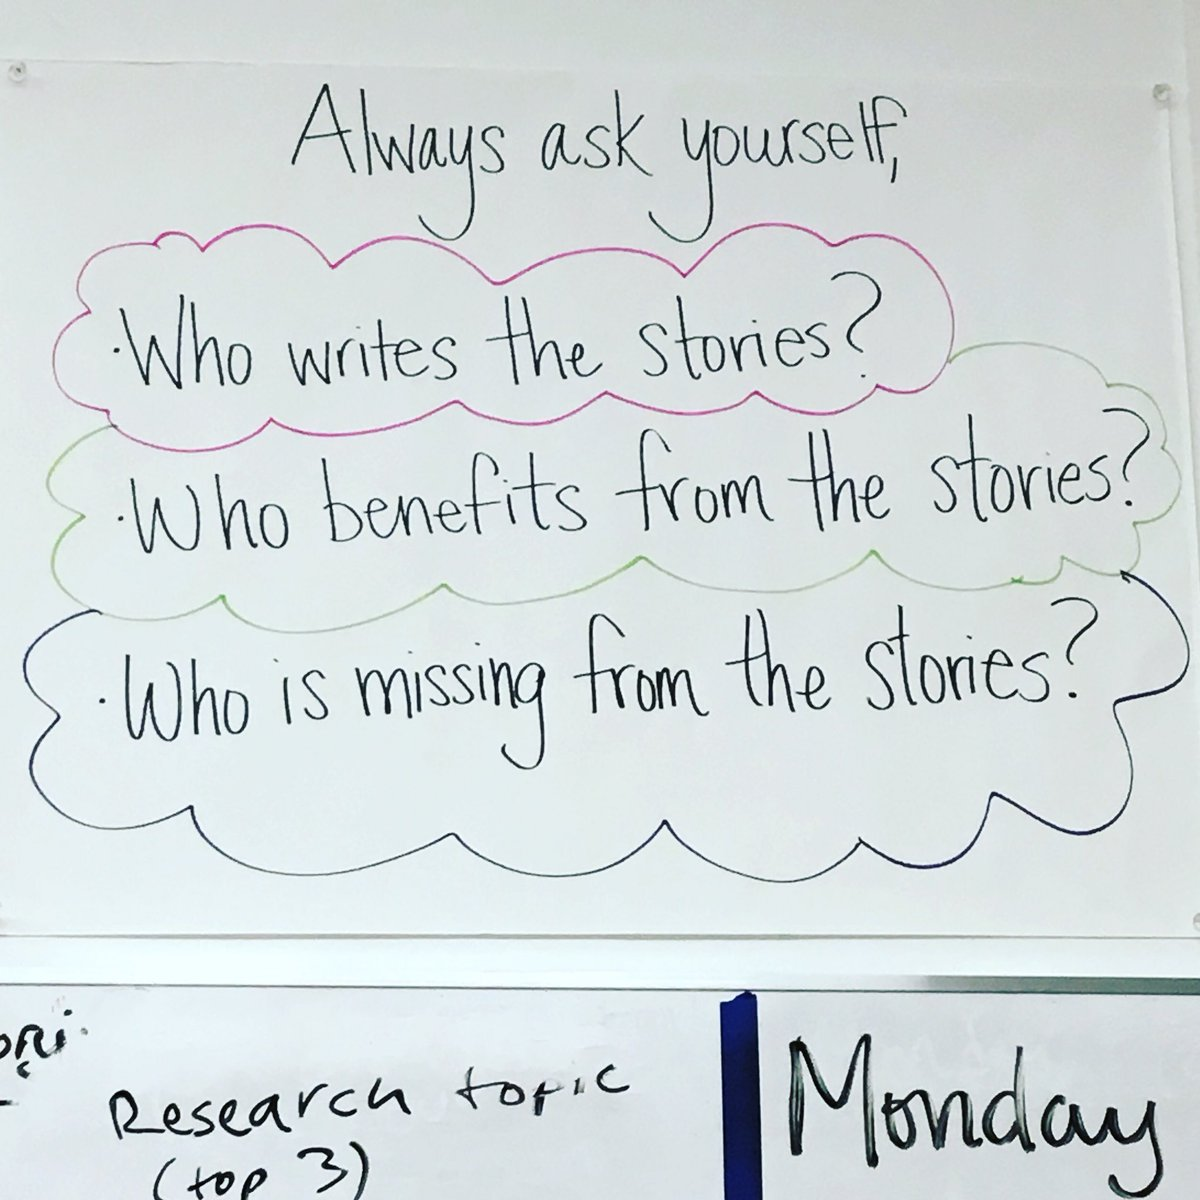 RT @jodikantor: Excellent questions from the wall of my daughter's classroom. https://t.co/ntgKHYG9eU